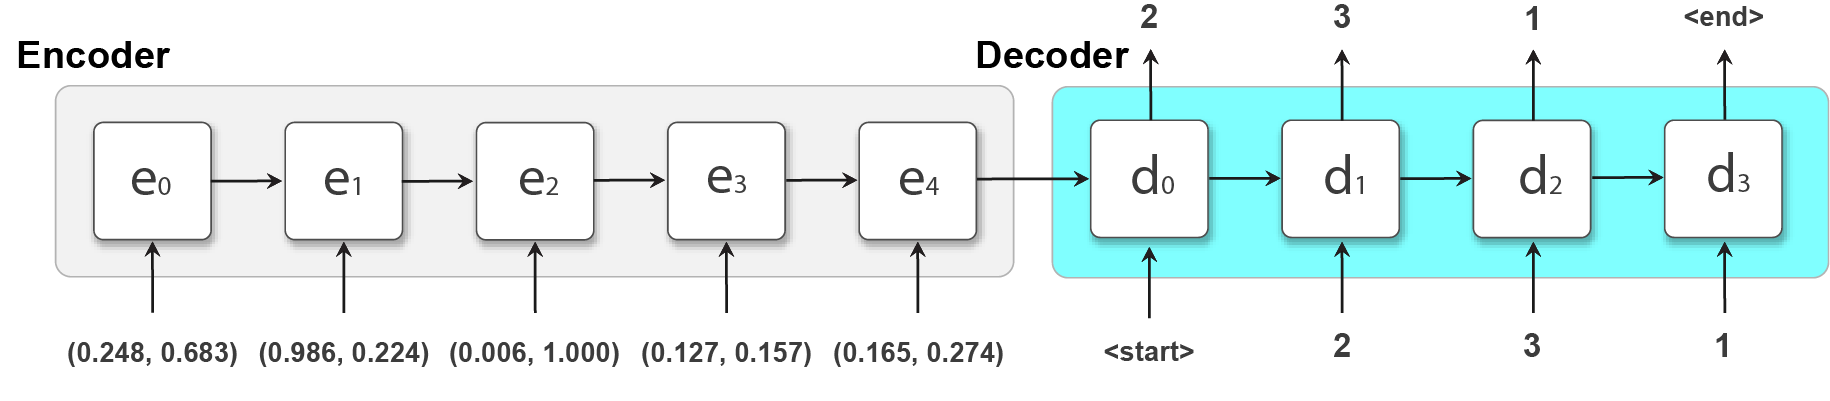 Sequence-to-sequence Model